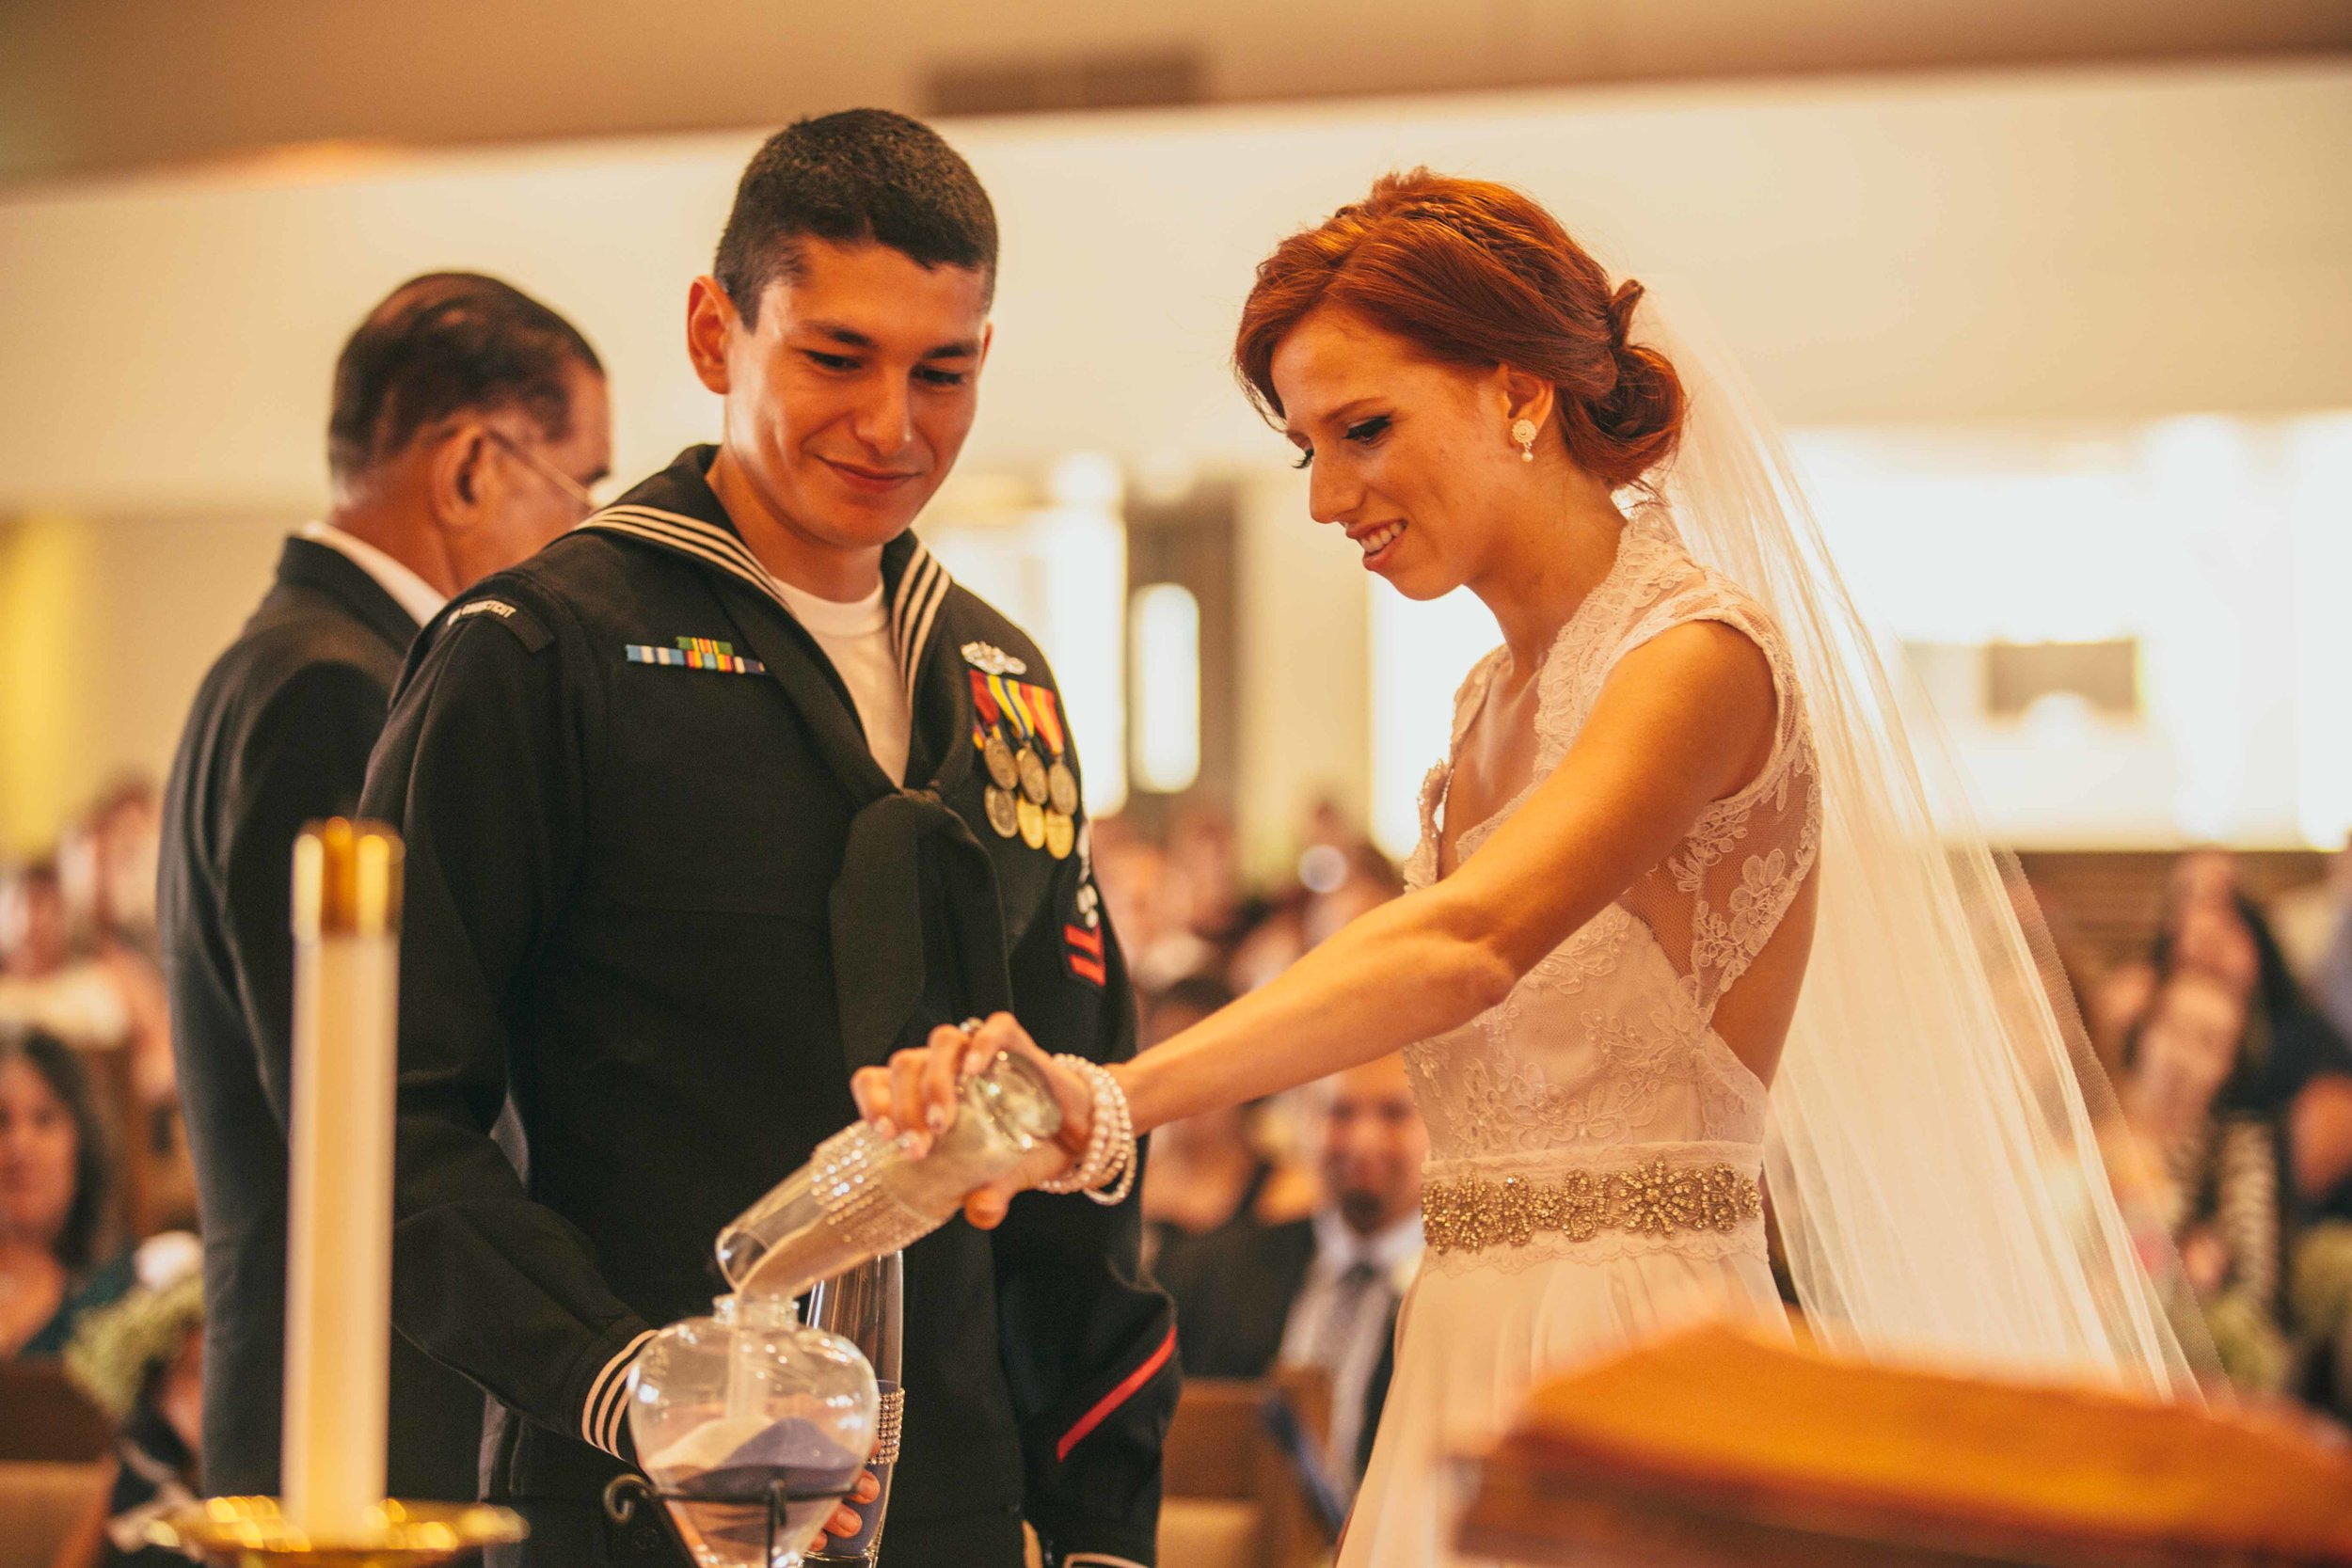 20140809-CruzWeddingRedlands-0041-sm.jpg